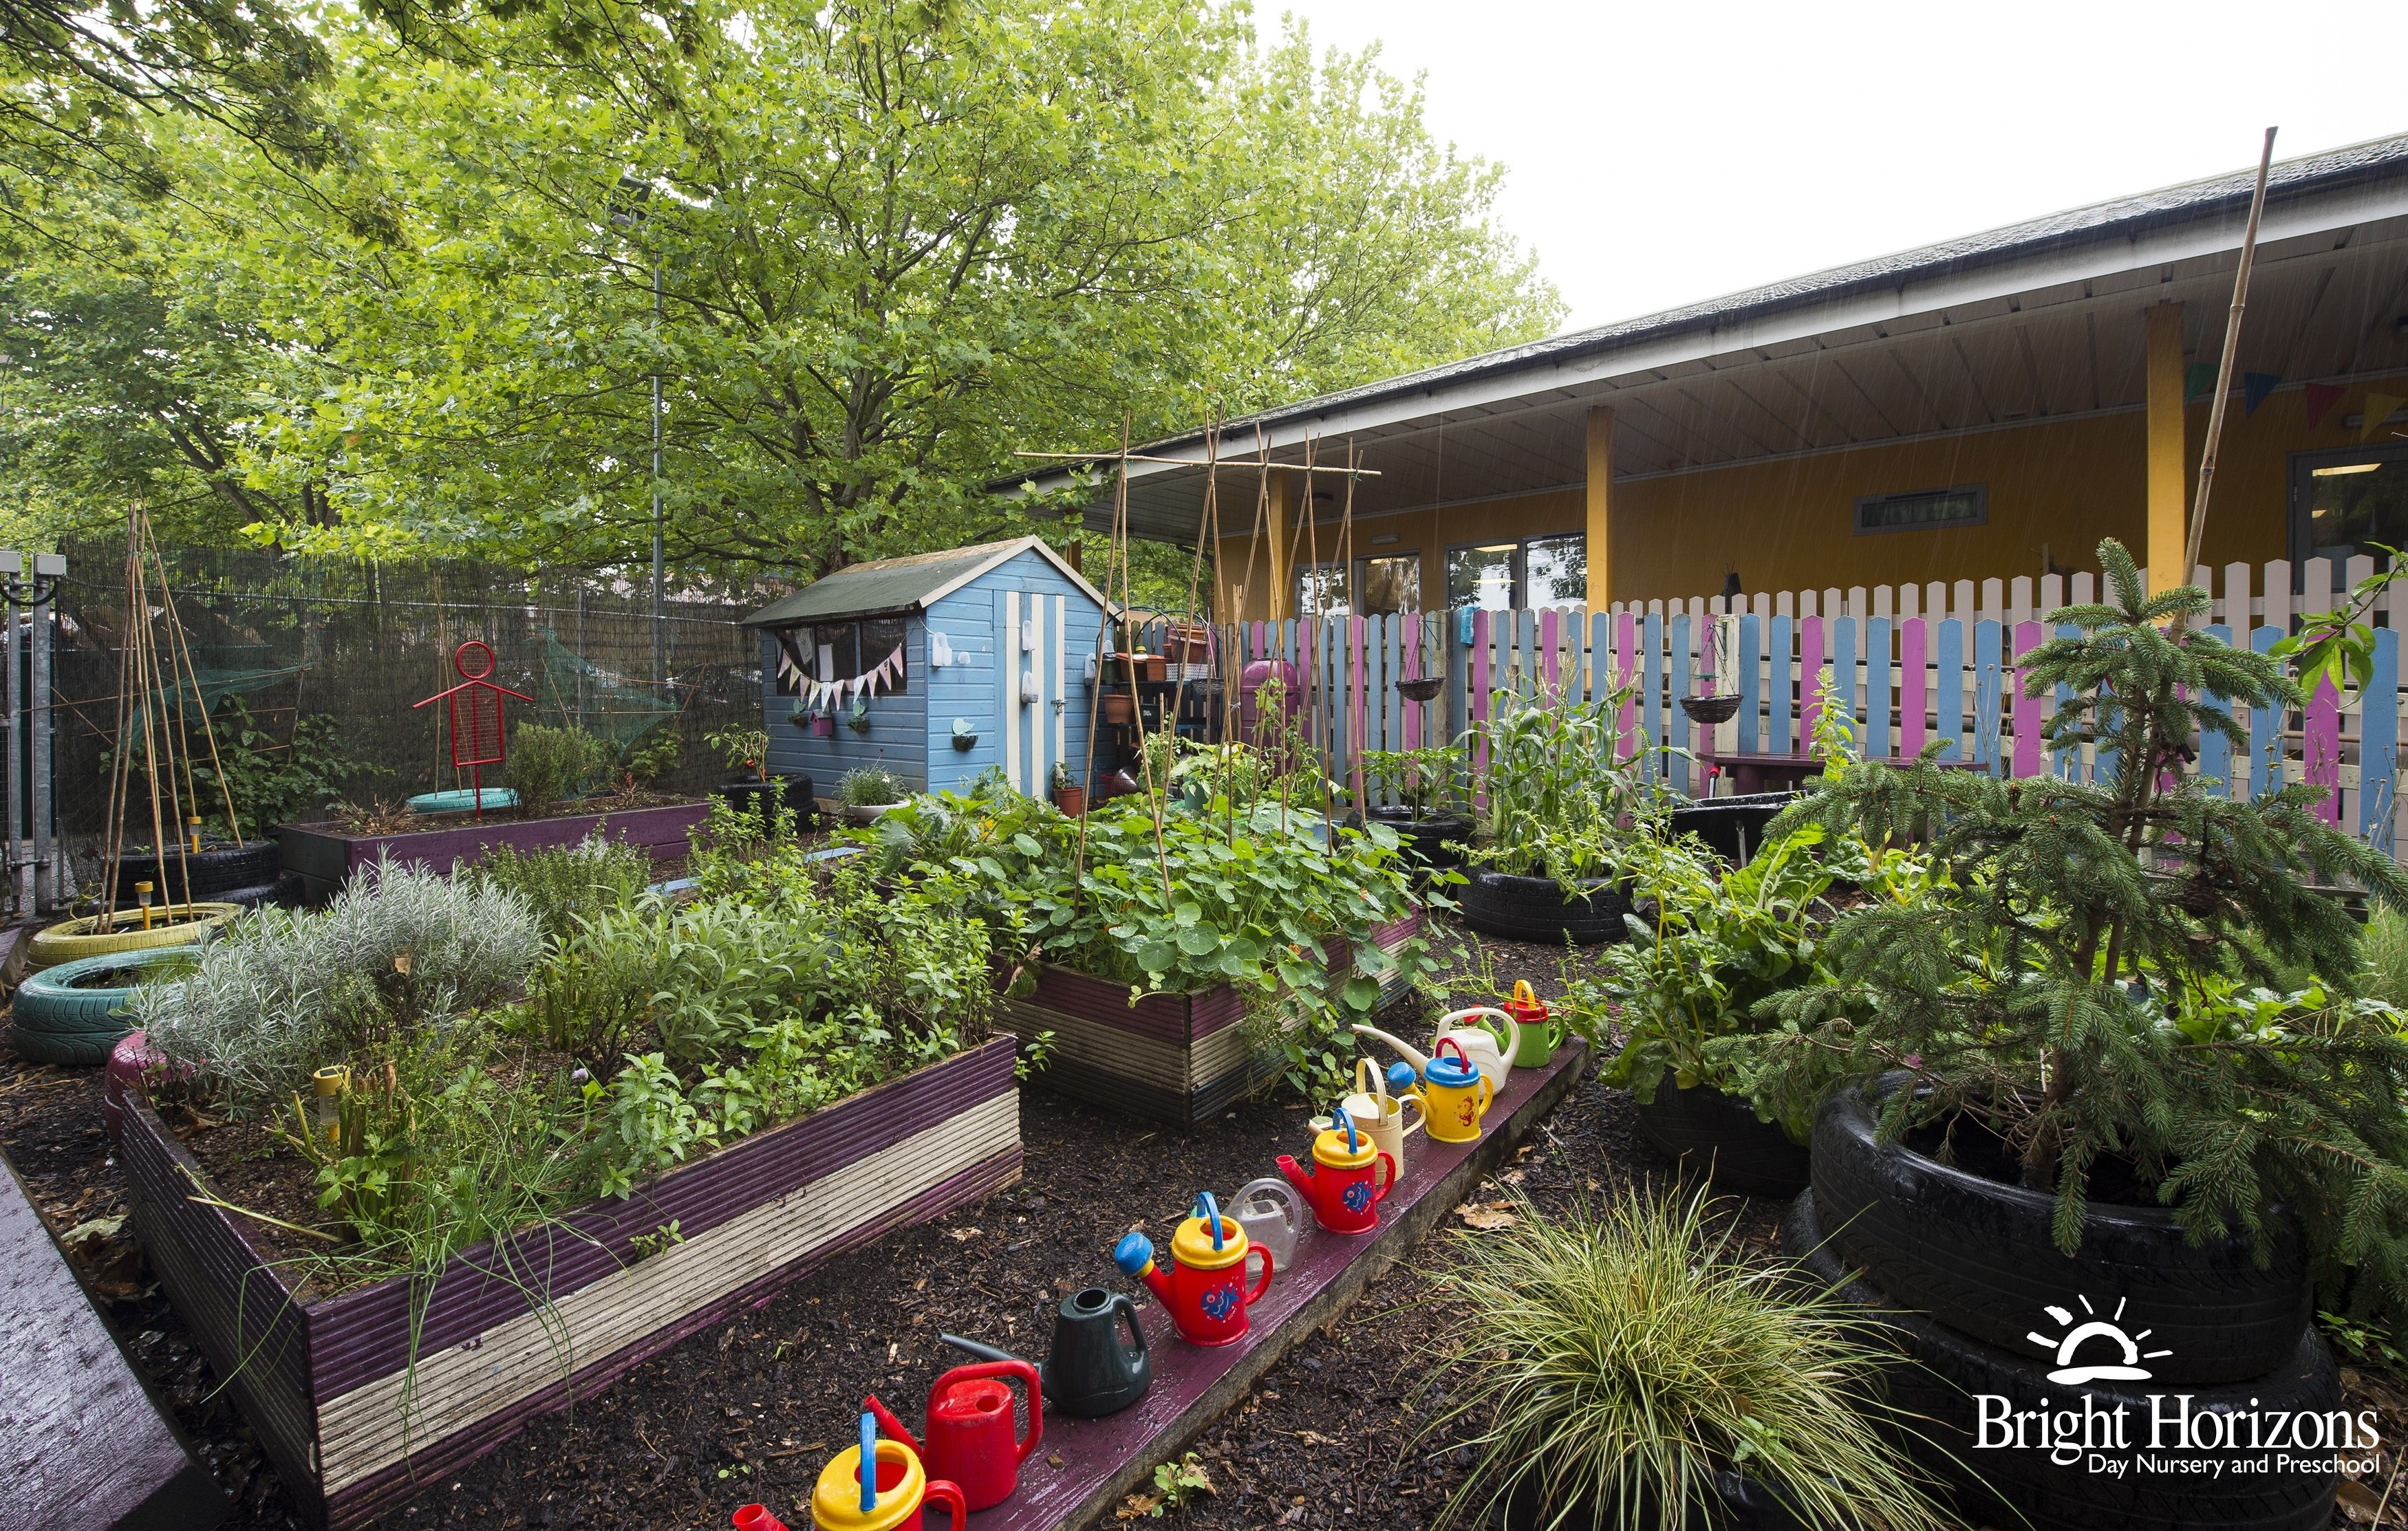 Quayside #nursery In #ipswich Offers A Warm, Welcoming Environment throughout Garden House Nursery School Ipswich